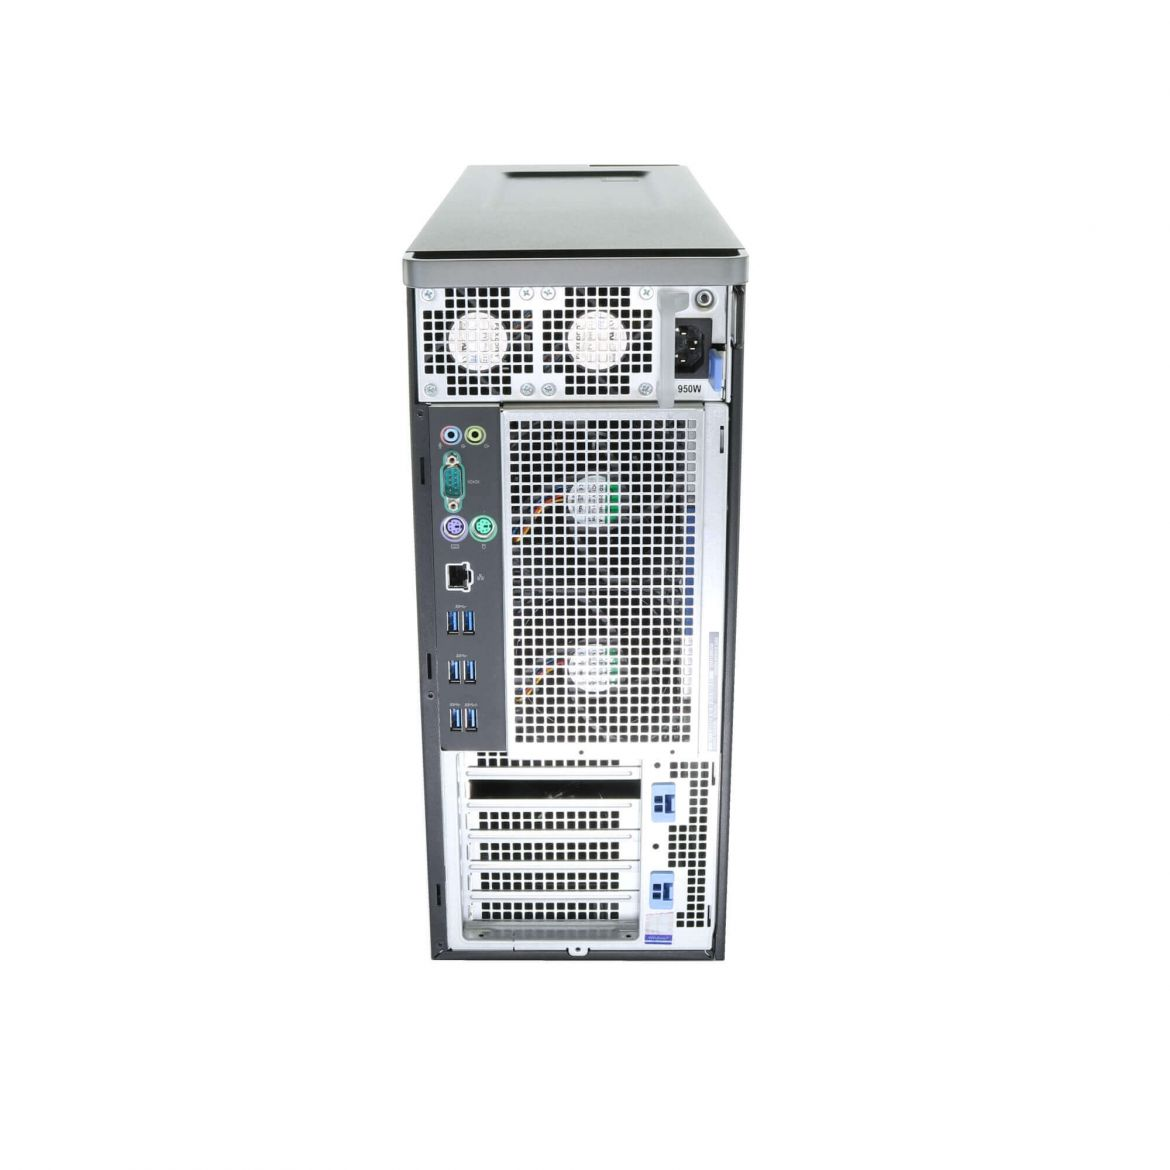 T7820 Tower